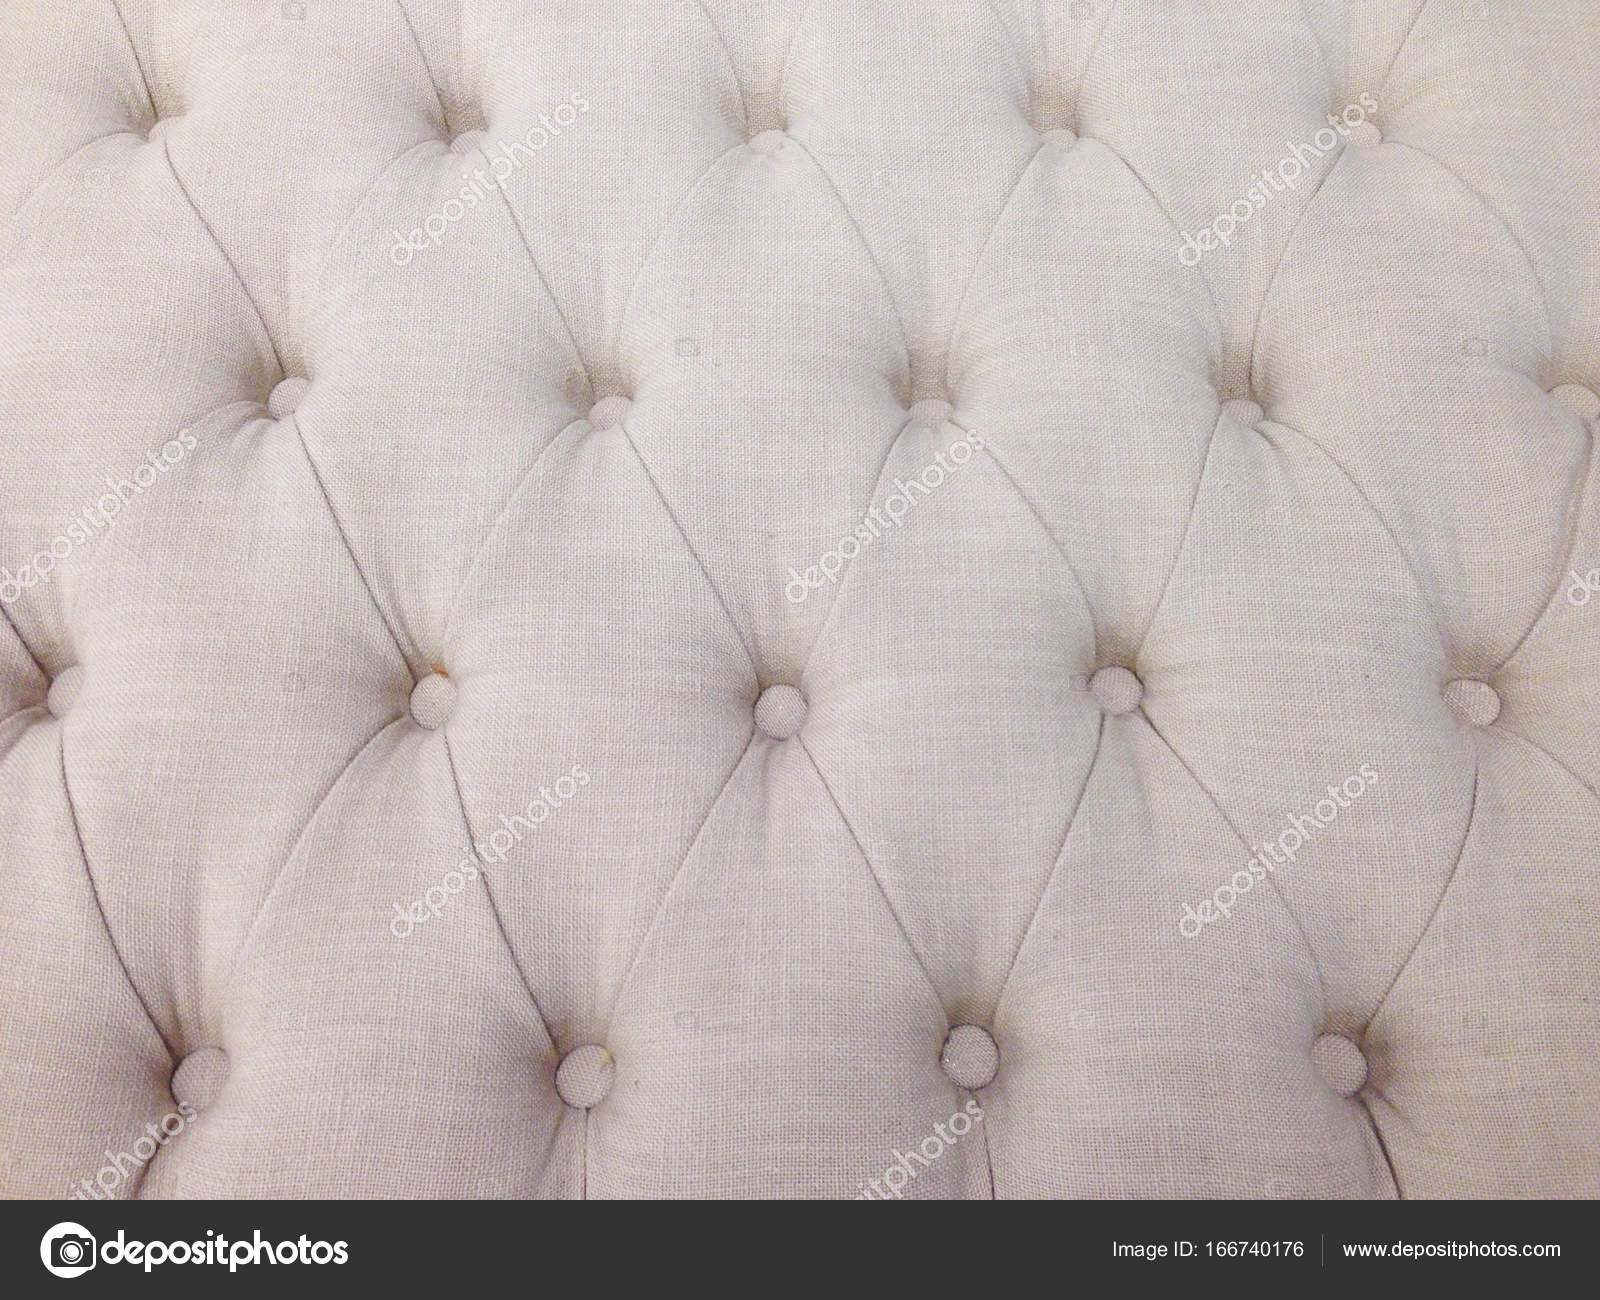 mattress texture. Close Up Mattress Texture Background \u2014 Photo By H.santima.gmail.com .